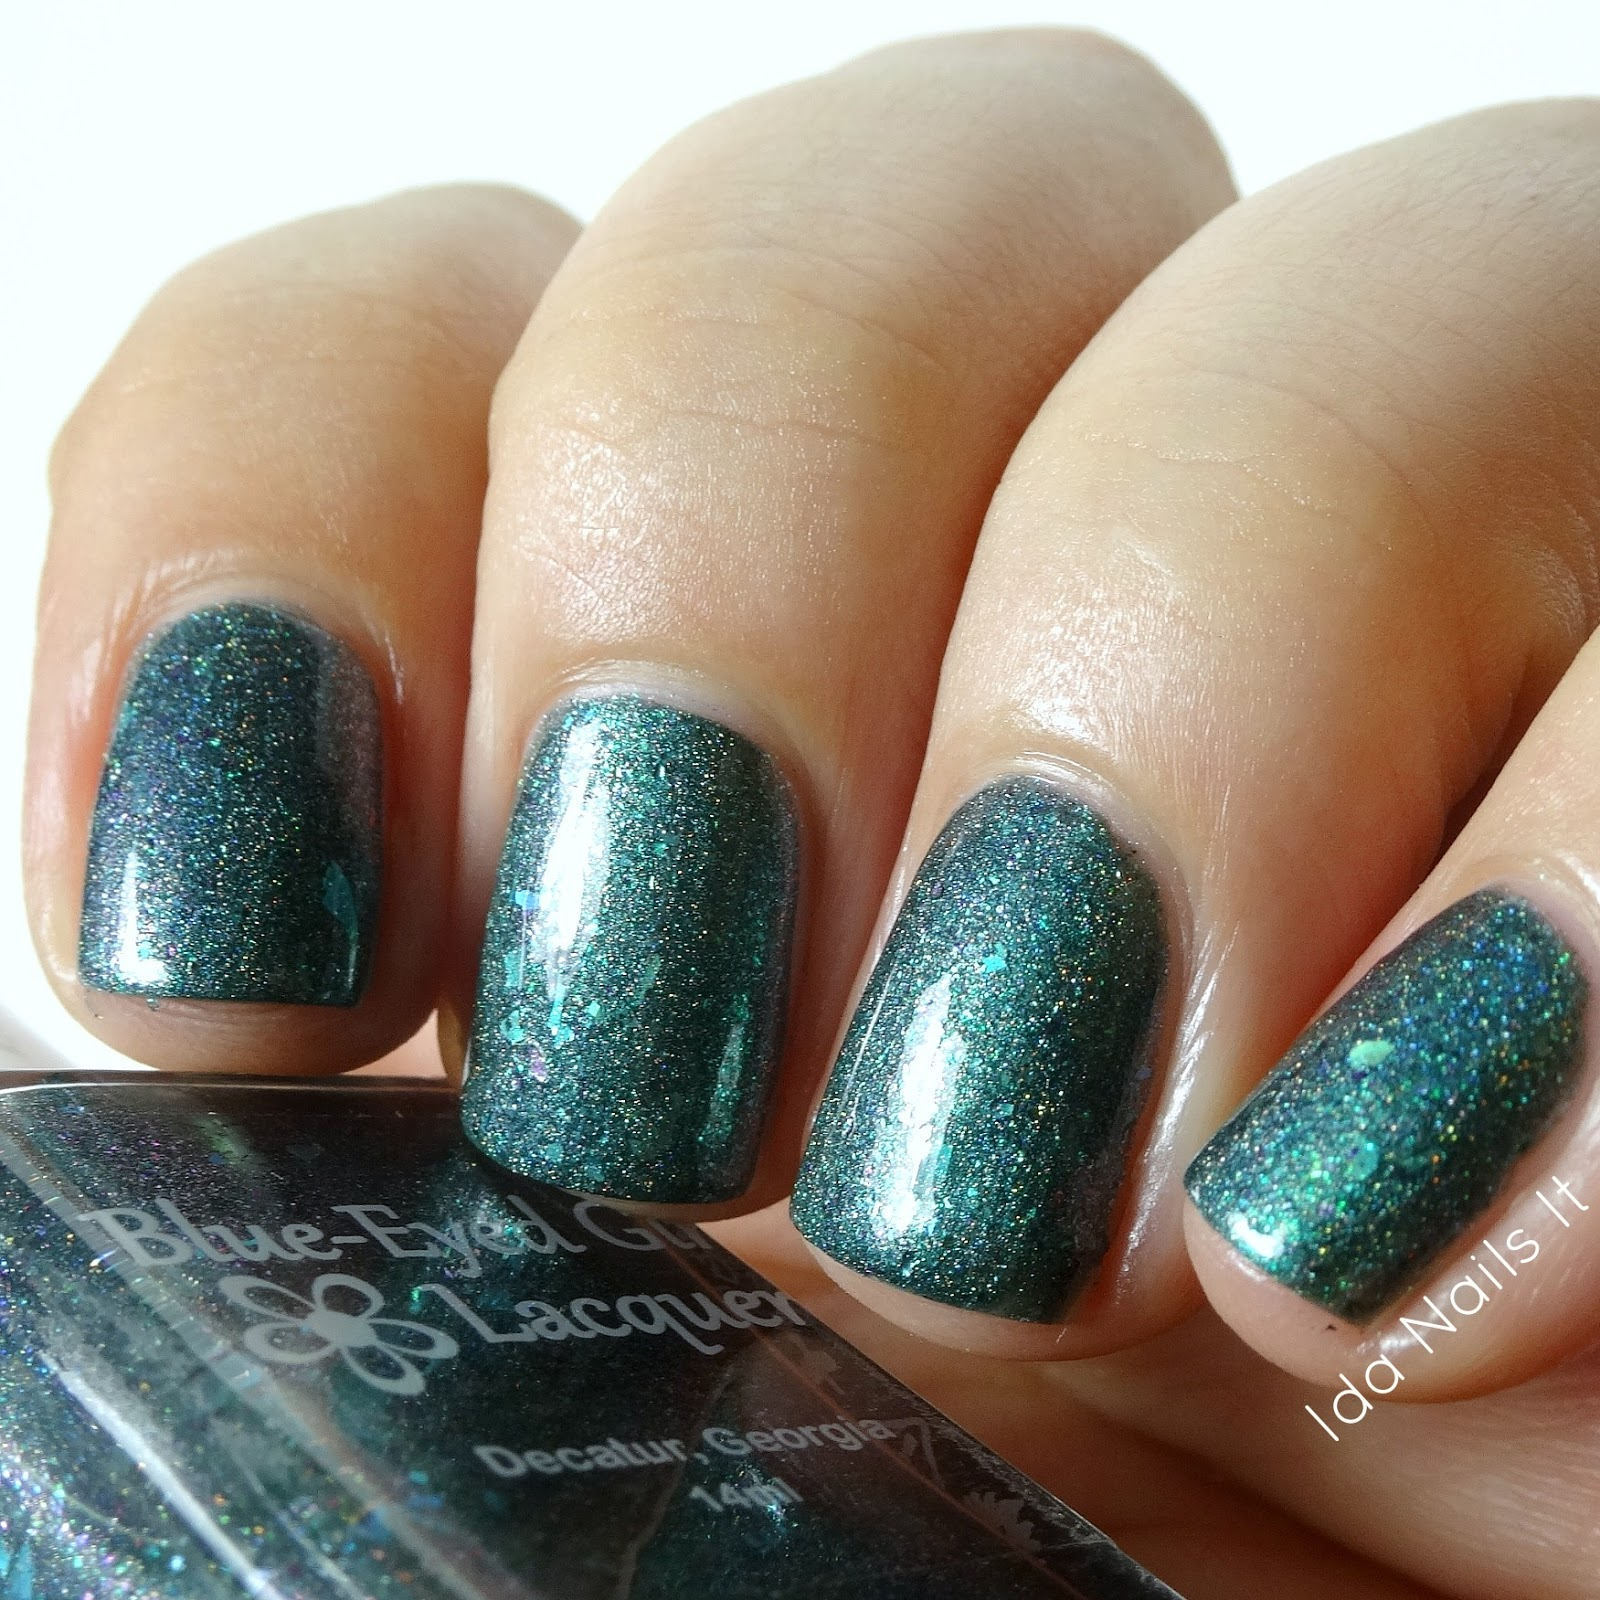 Ida Nails It: The Color Box - Green: Swatches and Review